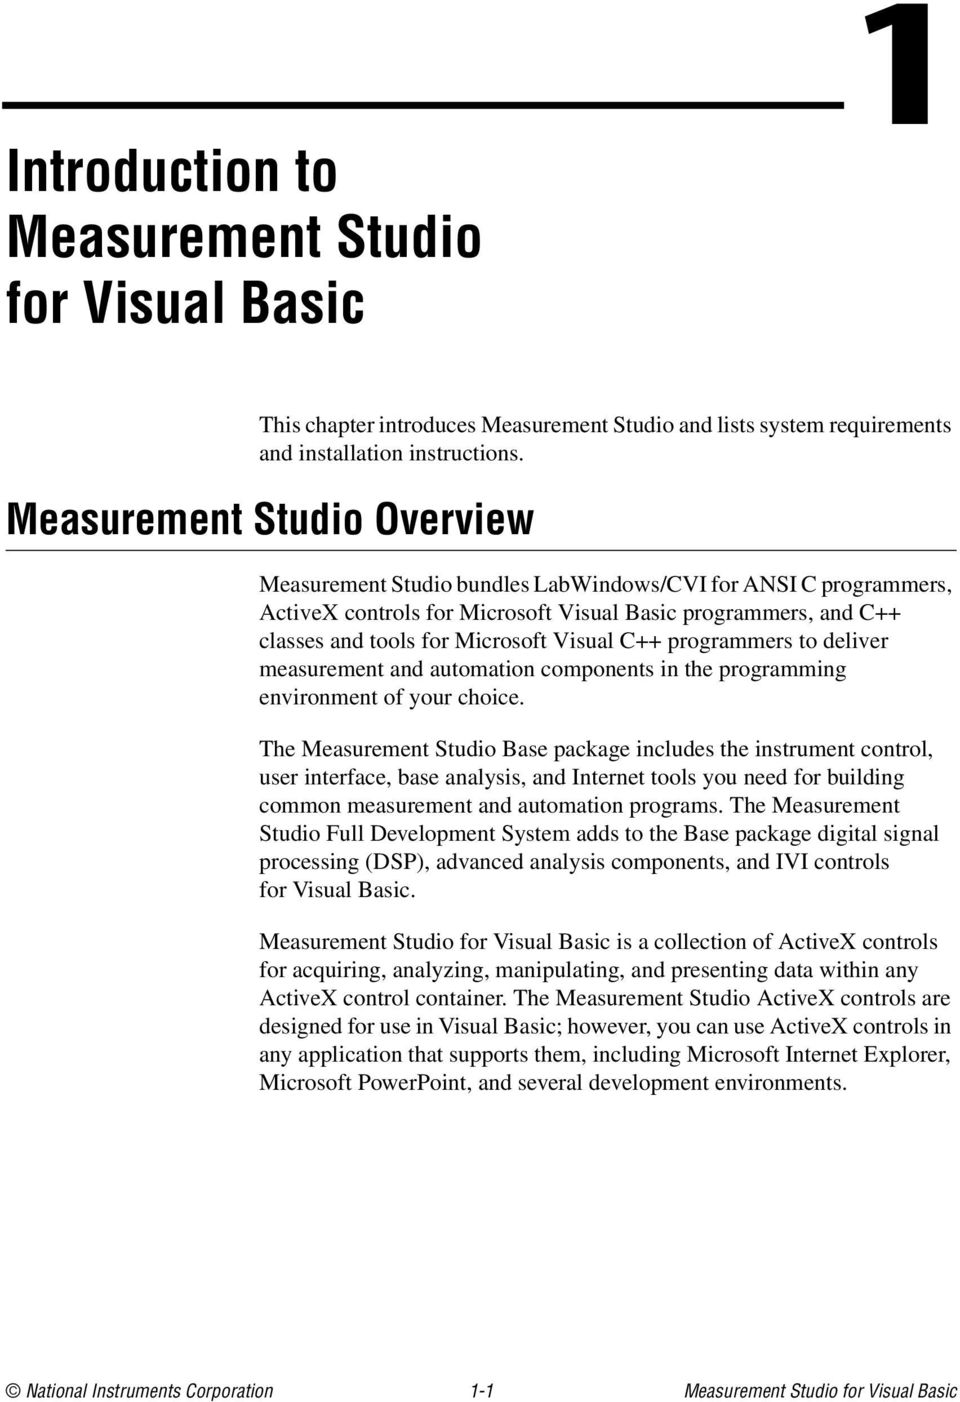 Getting Started with Measurement Studio for Visual Basic - PDF